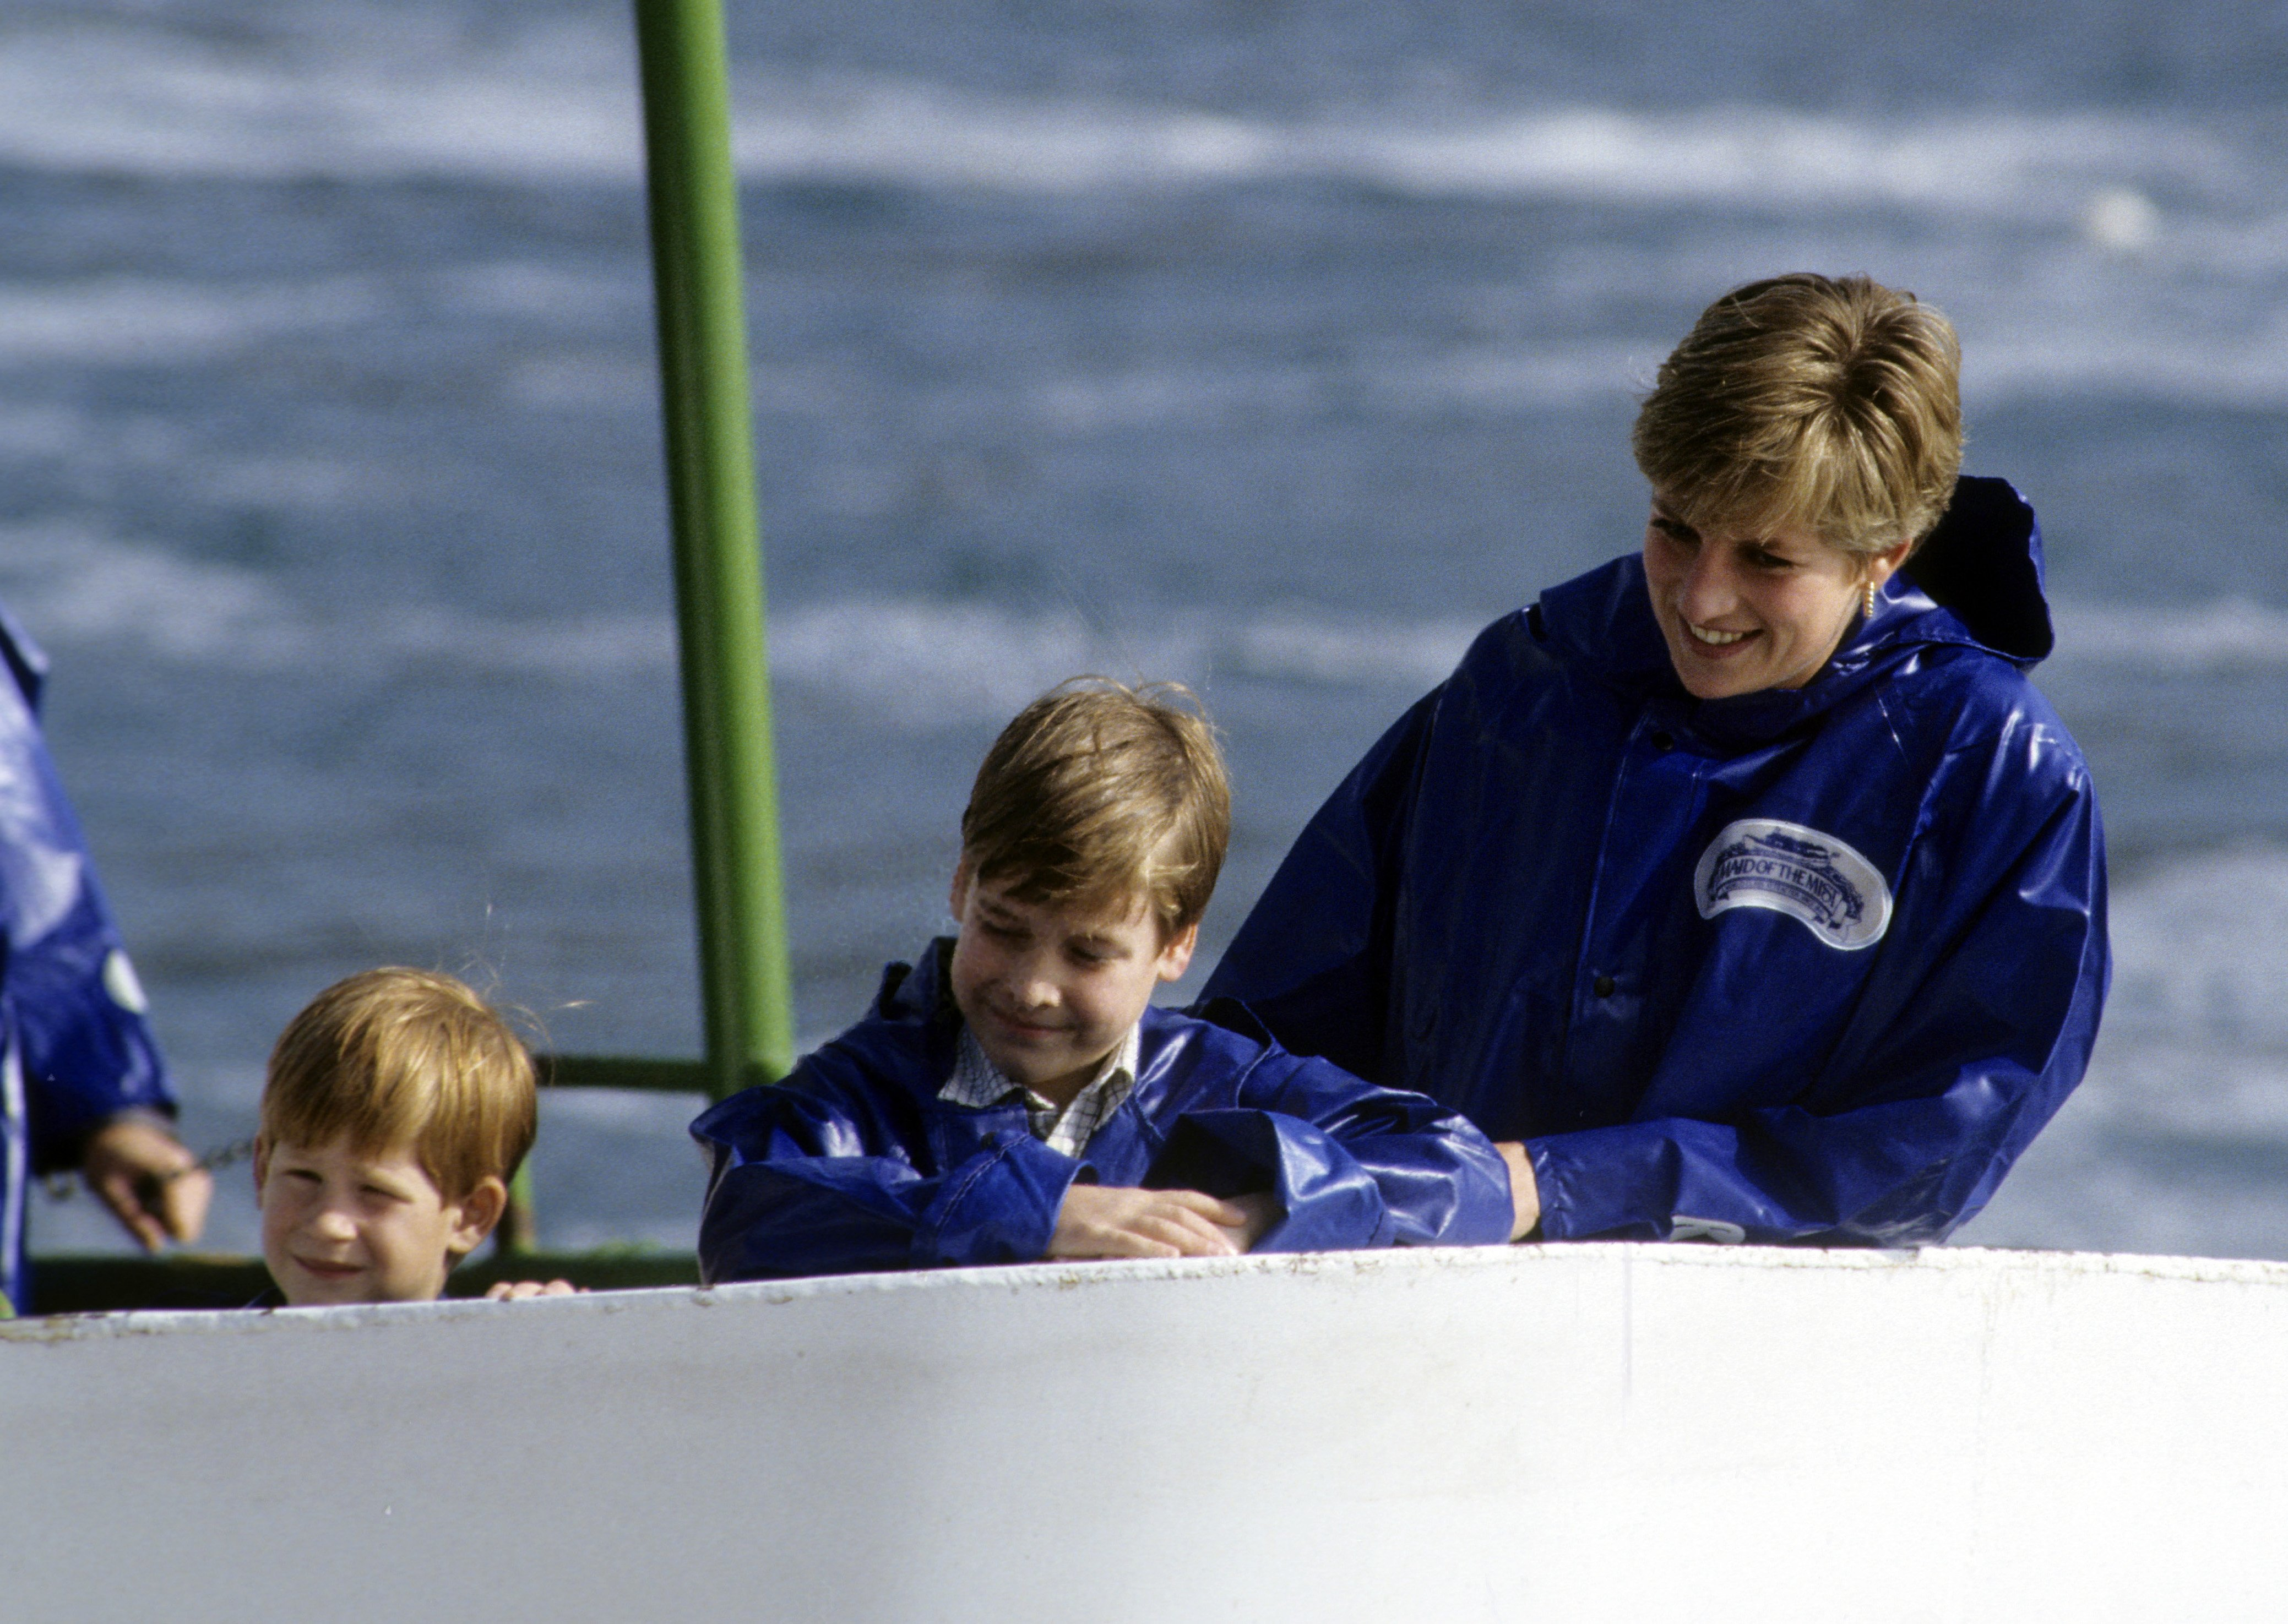 Image Credits: Getty Images | Princess Diana enjoying boat ride with William and Harry